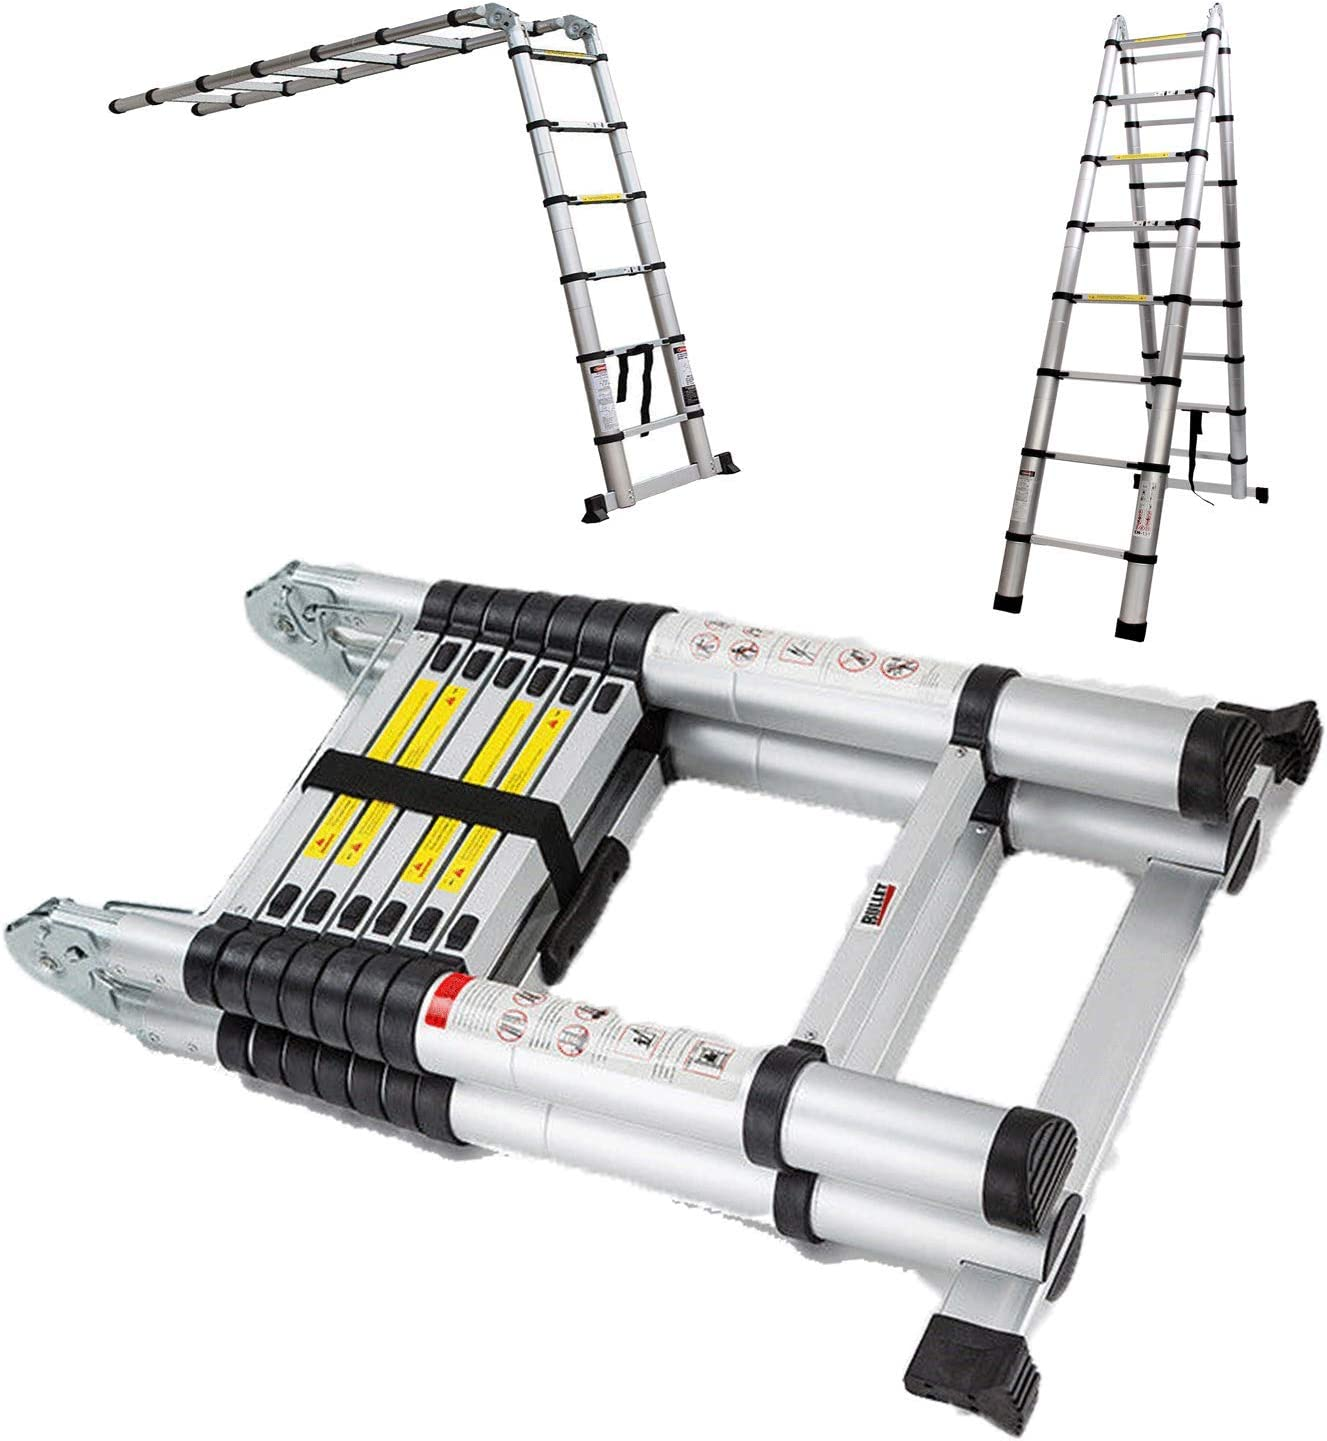 16.4 Ft Aluminum Telescopic Ladder Telescoping A-Type Extendable Multi-Purpose Ladder Heavy Duty Folding Combination Ladder 330 lbs Capacity for Indoor Outdoor Work 8.2 ft + 8.2 ft